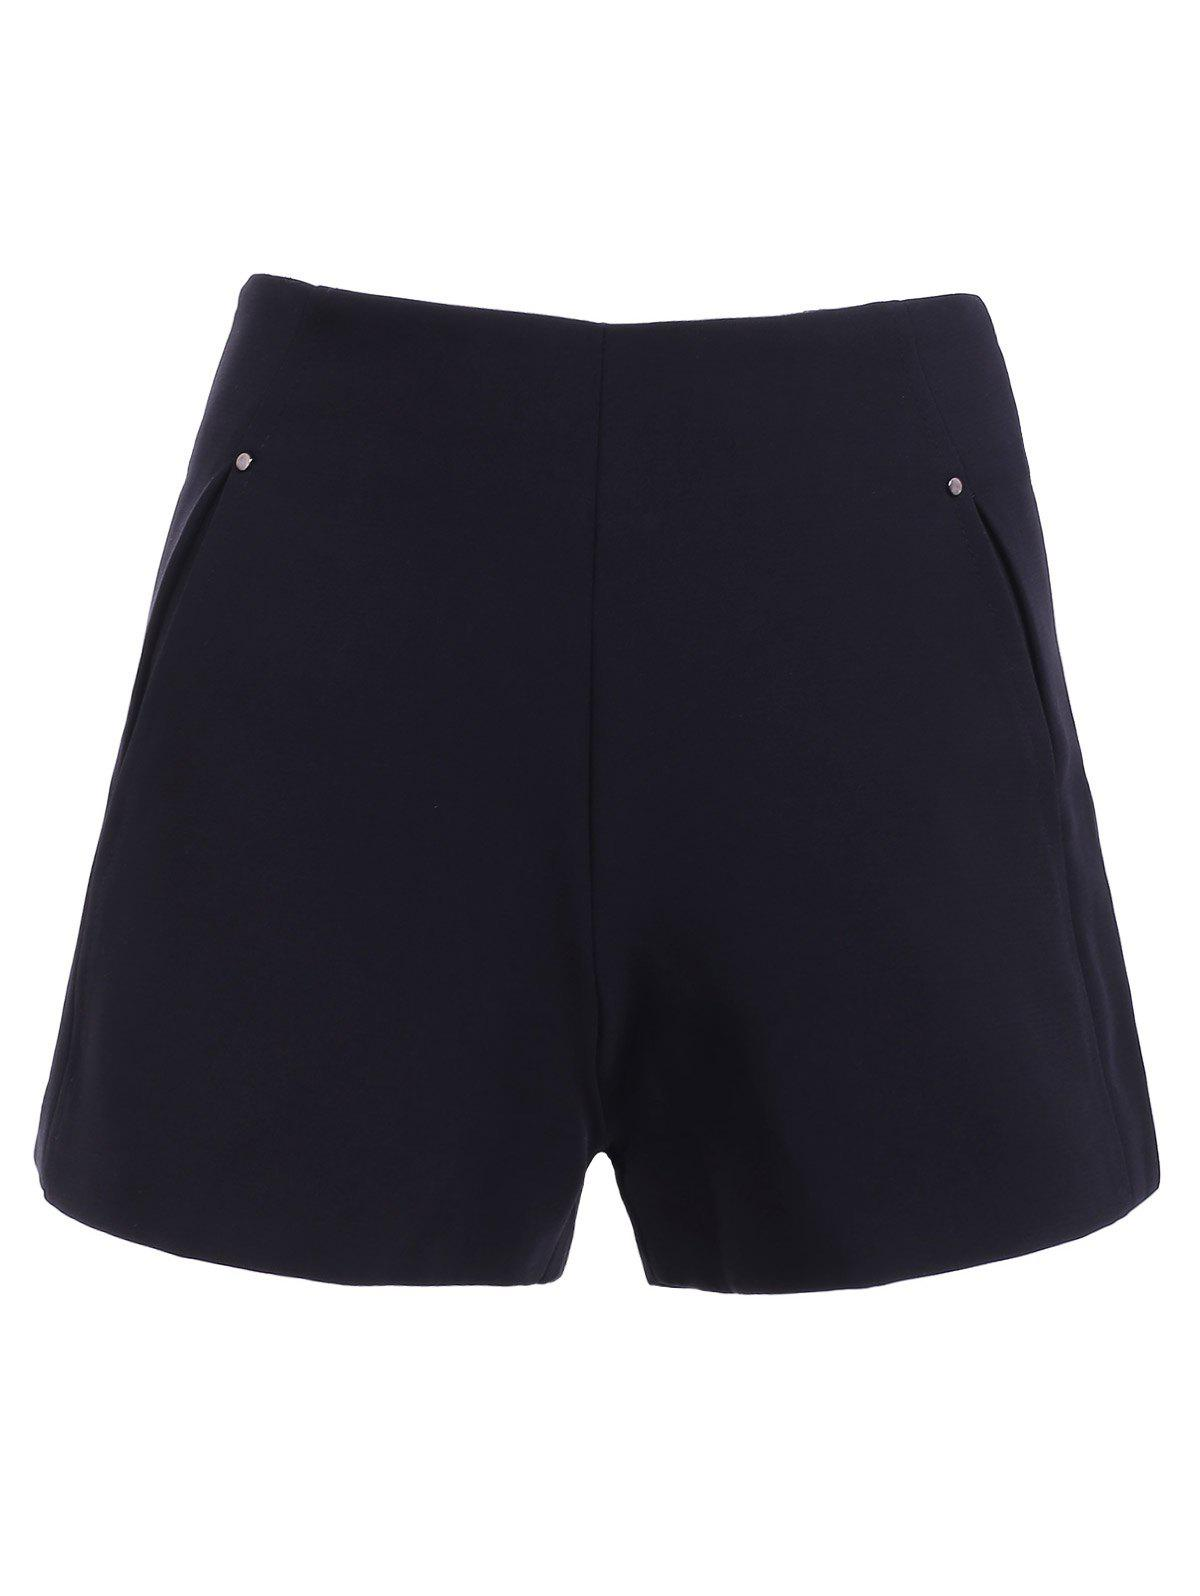 Simple Women's Solid Color High Waist Pockets Shorts - BLACK M